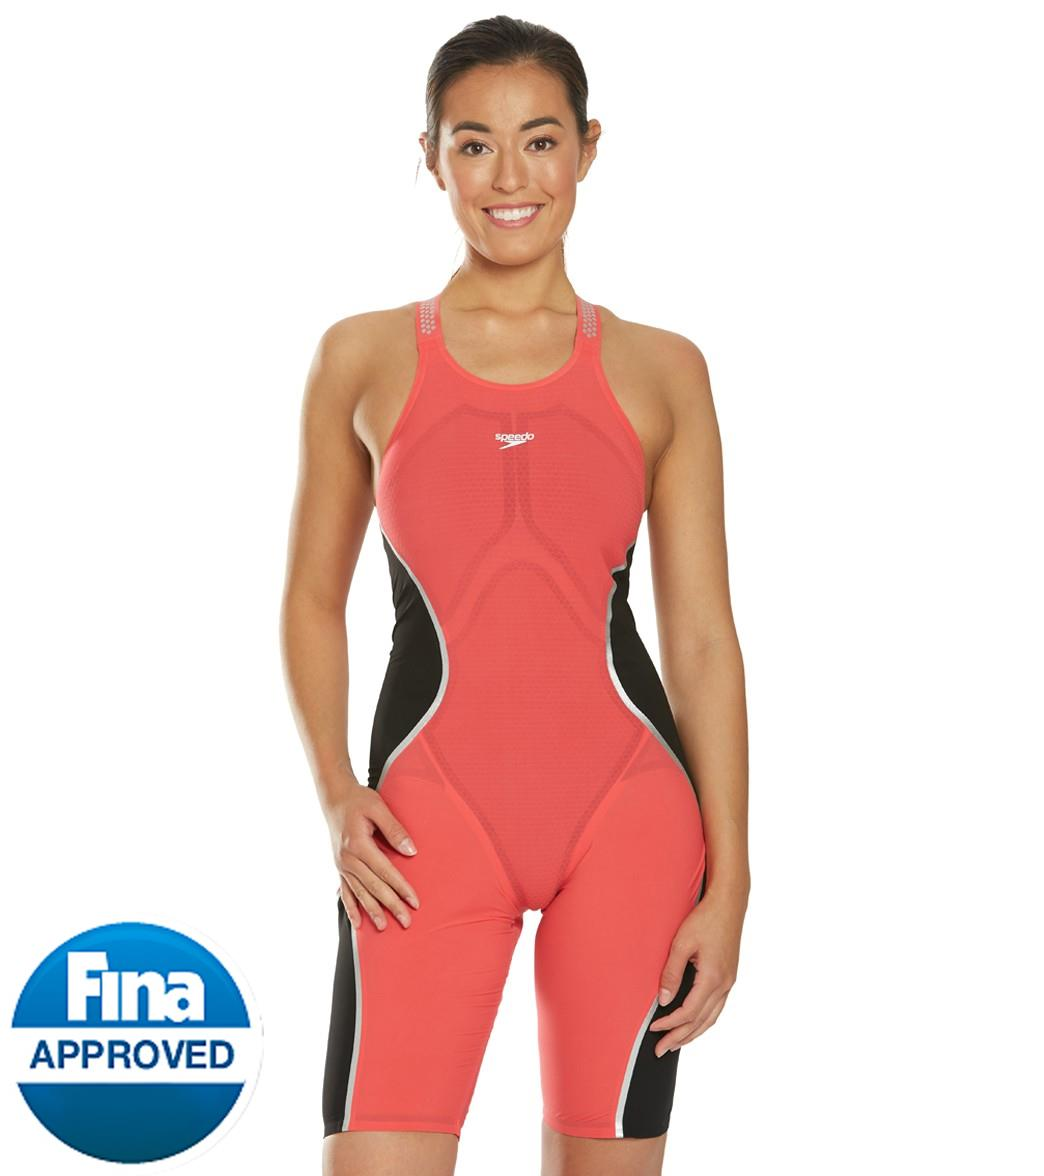 bbf7704390557 Speedo Women's LZR Pure Intent Closed Back Kneeskin Tech Suit Swimsuit at  SwimOutlet.com - Free Shipping